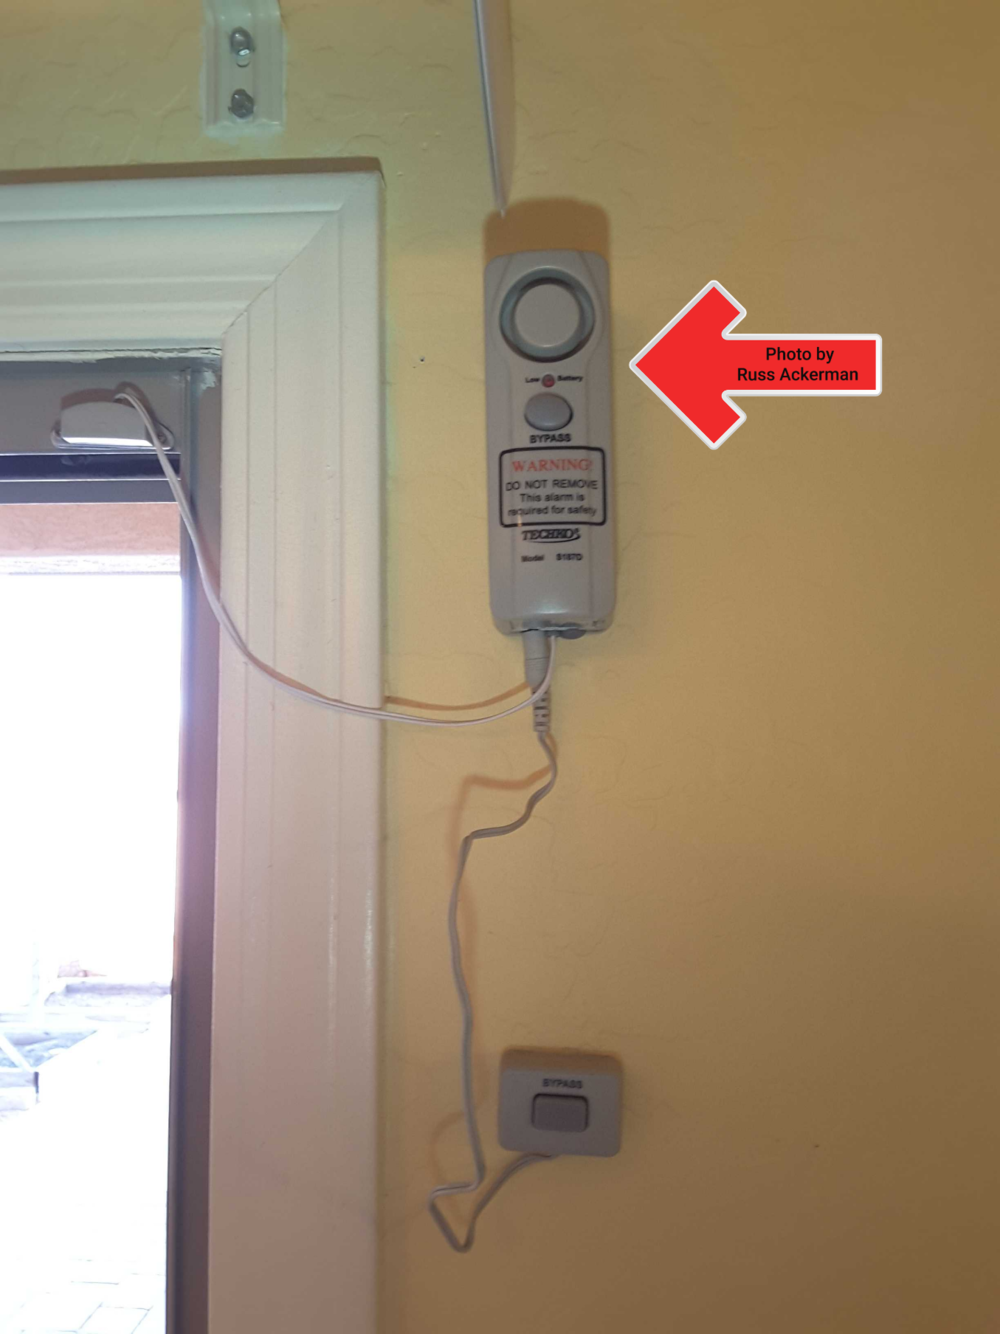 Working alarms are highly recommended at all windows and doors which do not self-close/self-latch and lead to backyard/pool area.